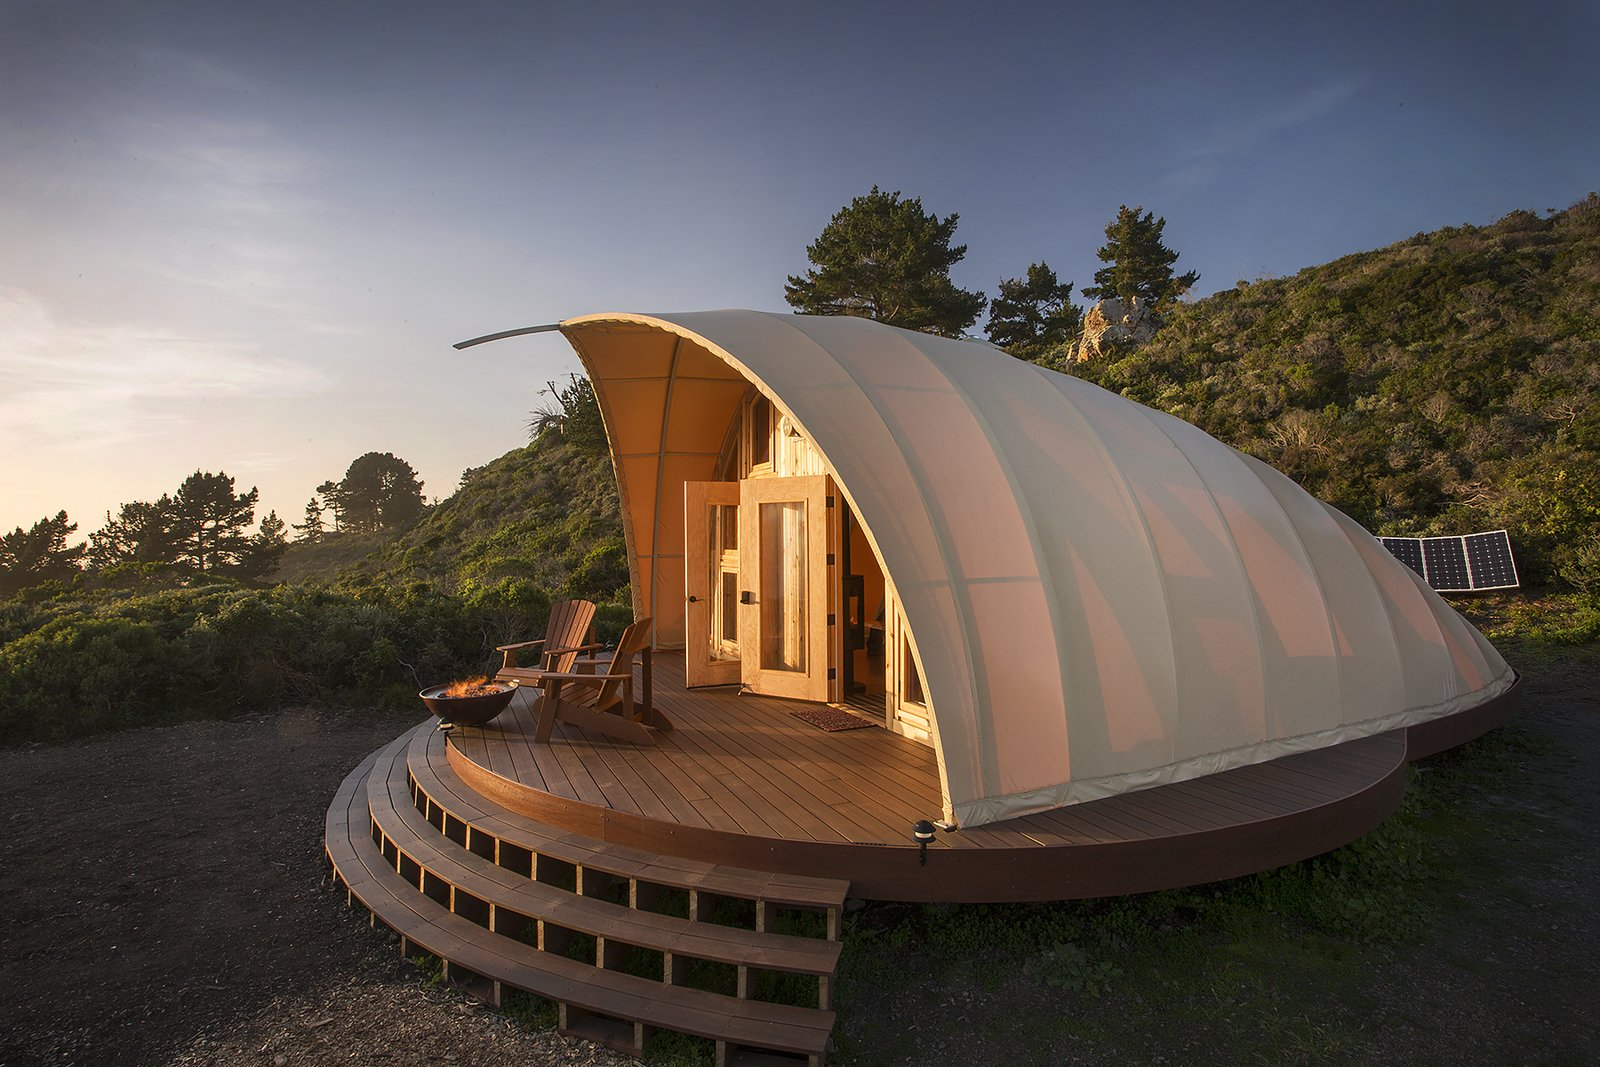 The Autonomous Tent - It's kind of like a yurt, only the high tech manufacturing process ensures absolute precision providing simple installation and a tight seal between fabric and frame that cannot be accomplished with a yurt, making the structure look and feel more permanent.   Cabins & Hideouts